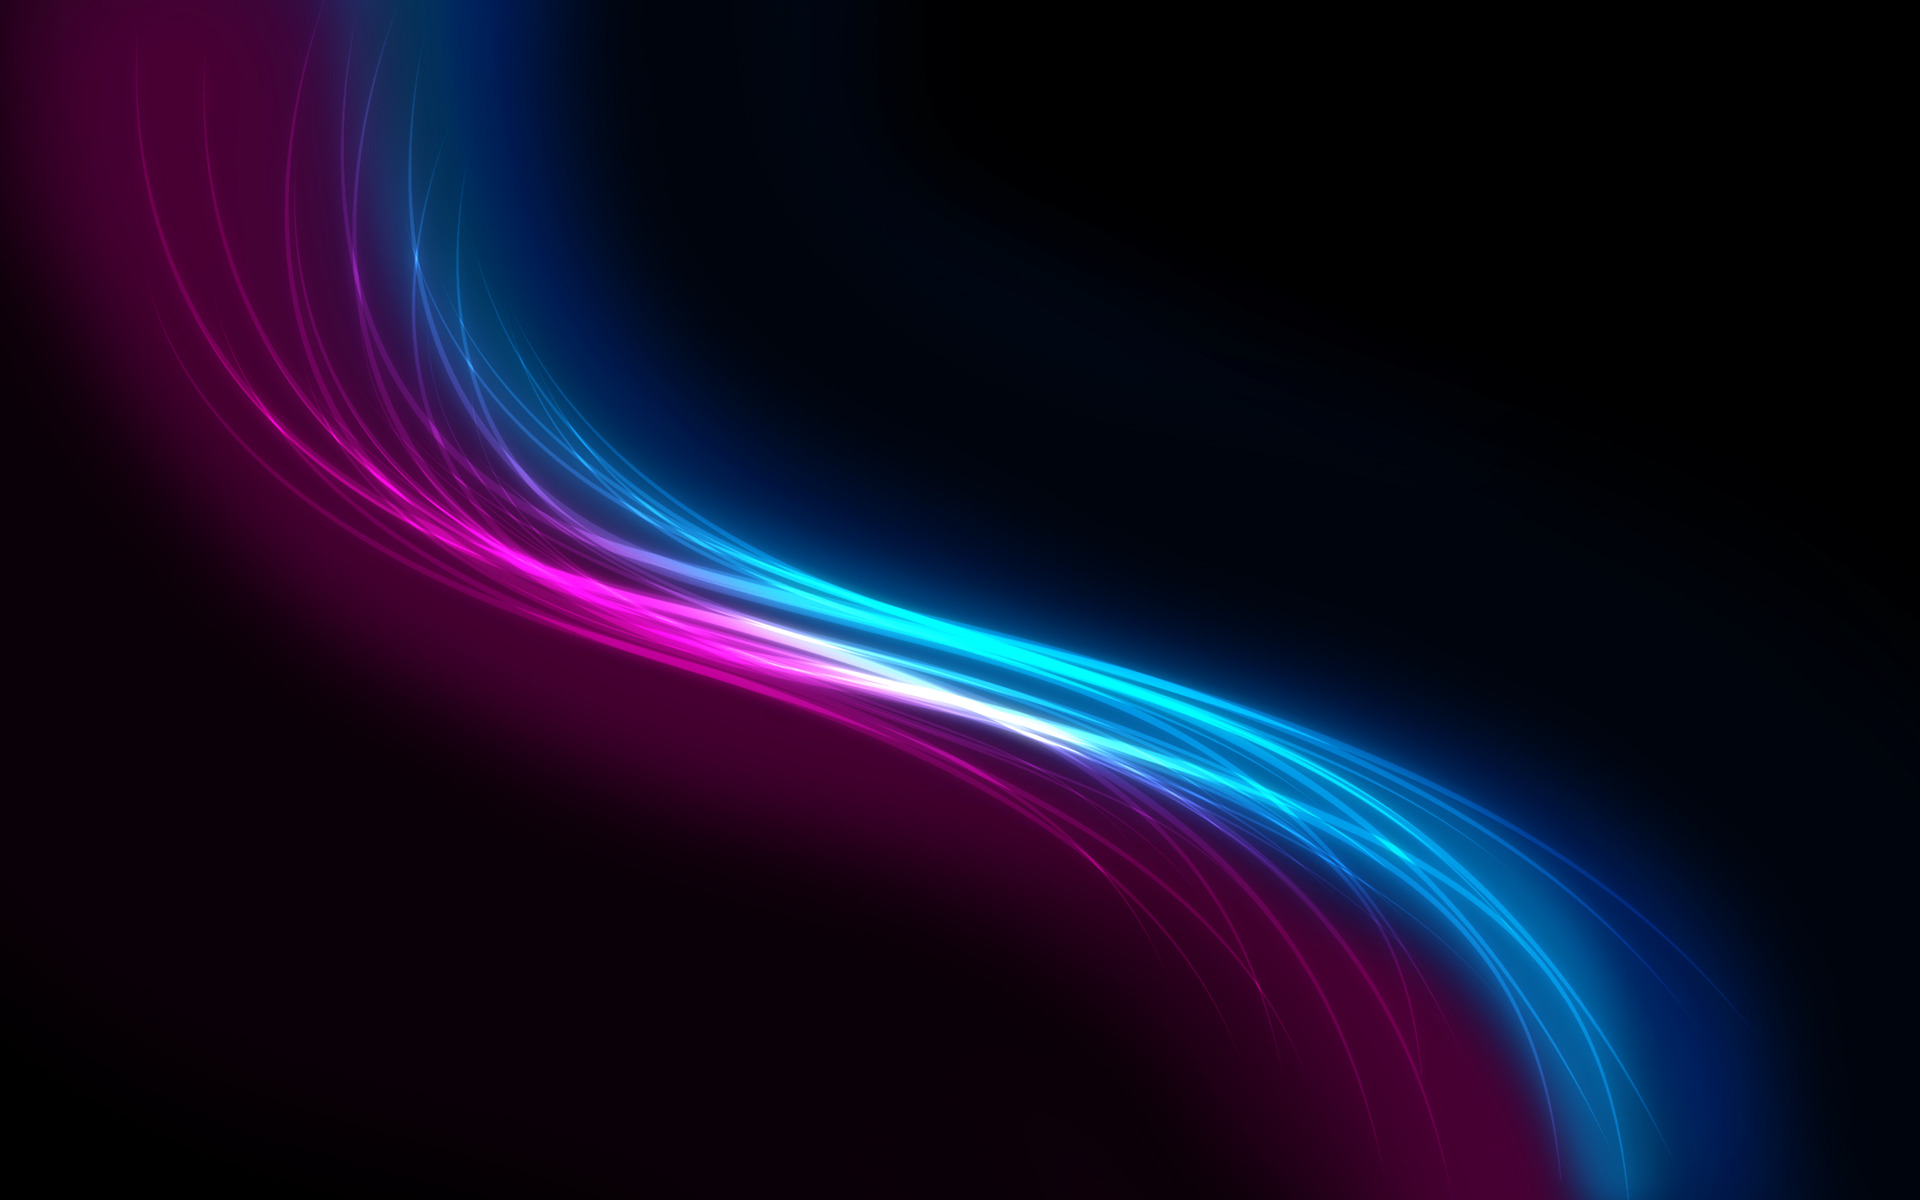 Glowing curves